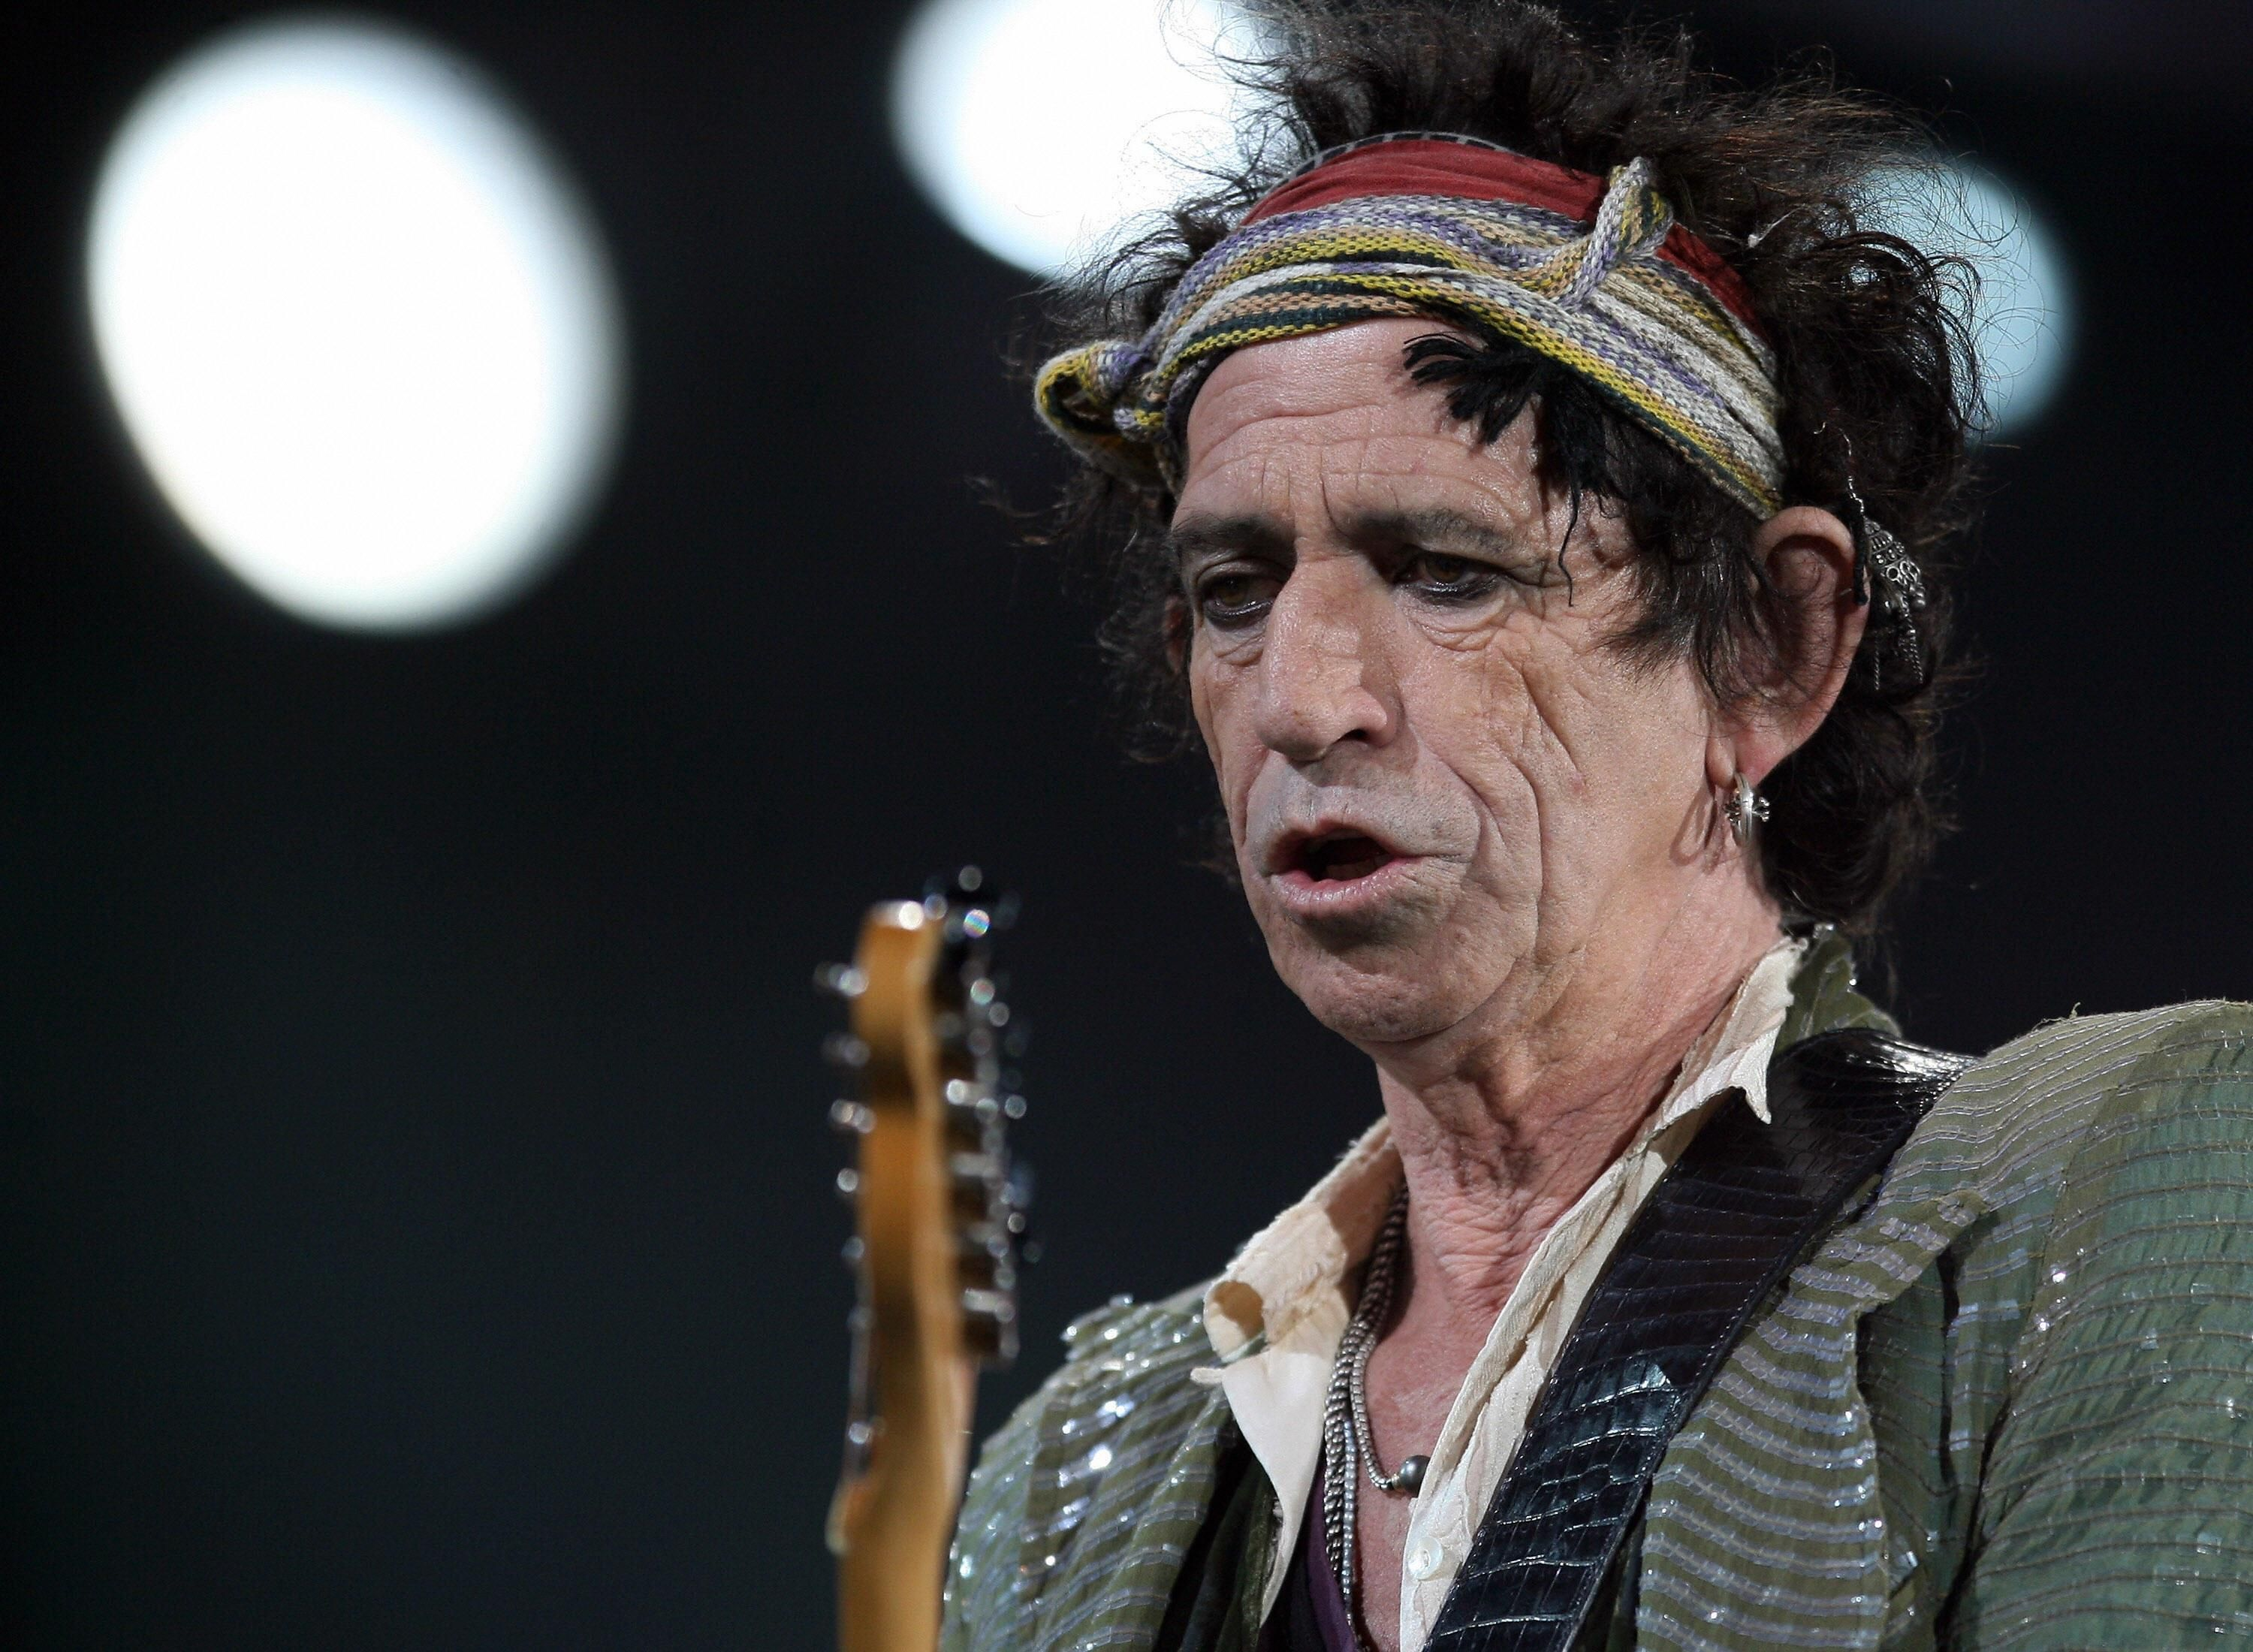 BREAKING: Rolling Stones guitarist Keith Richards found still alive